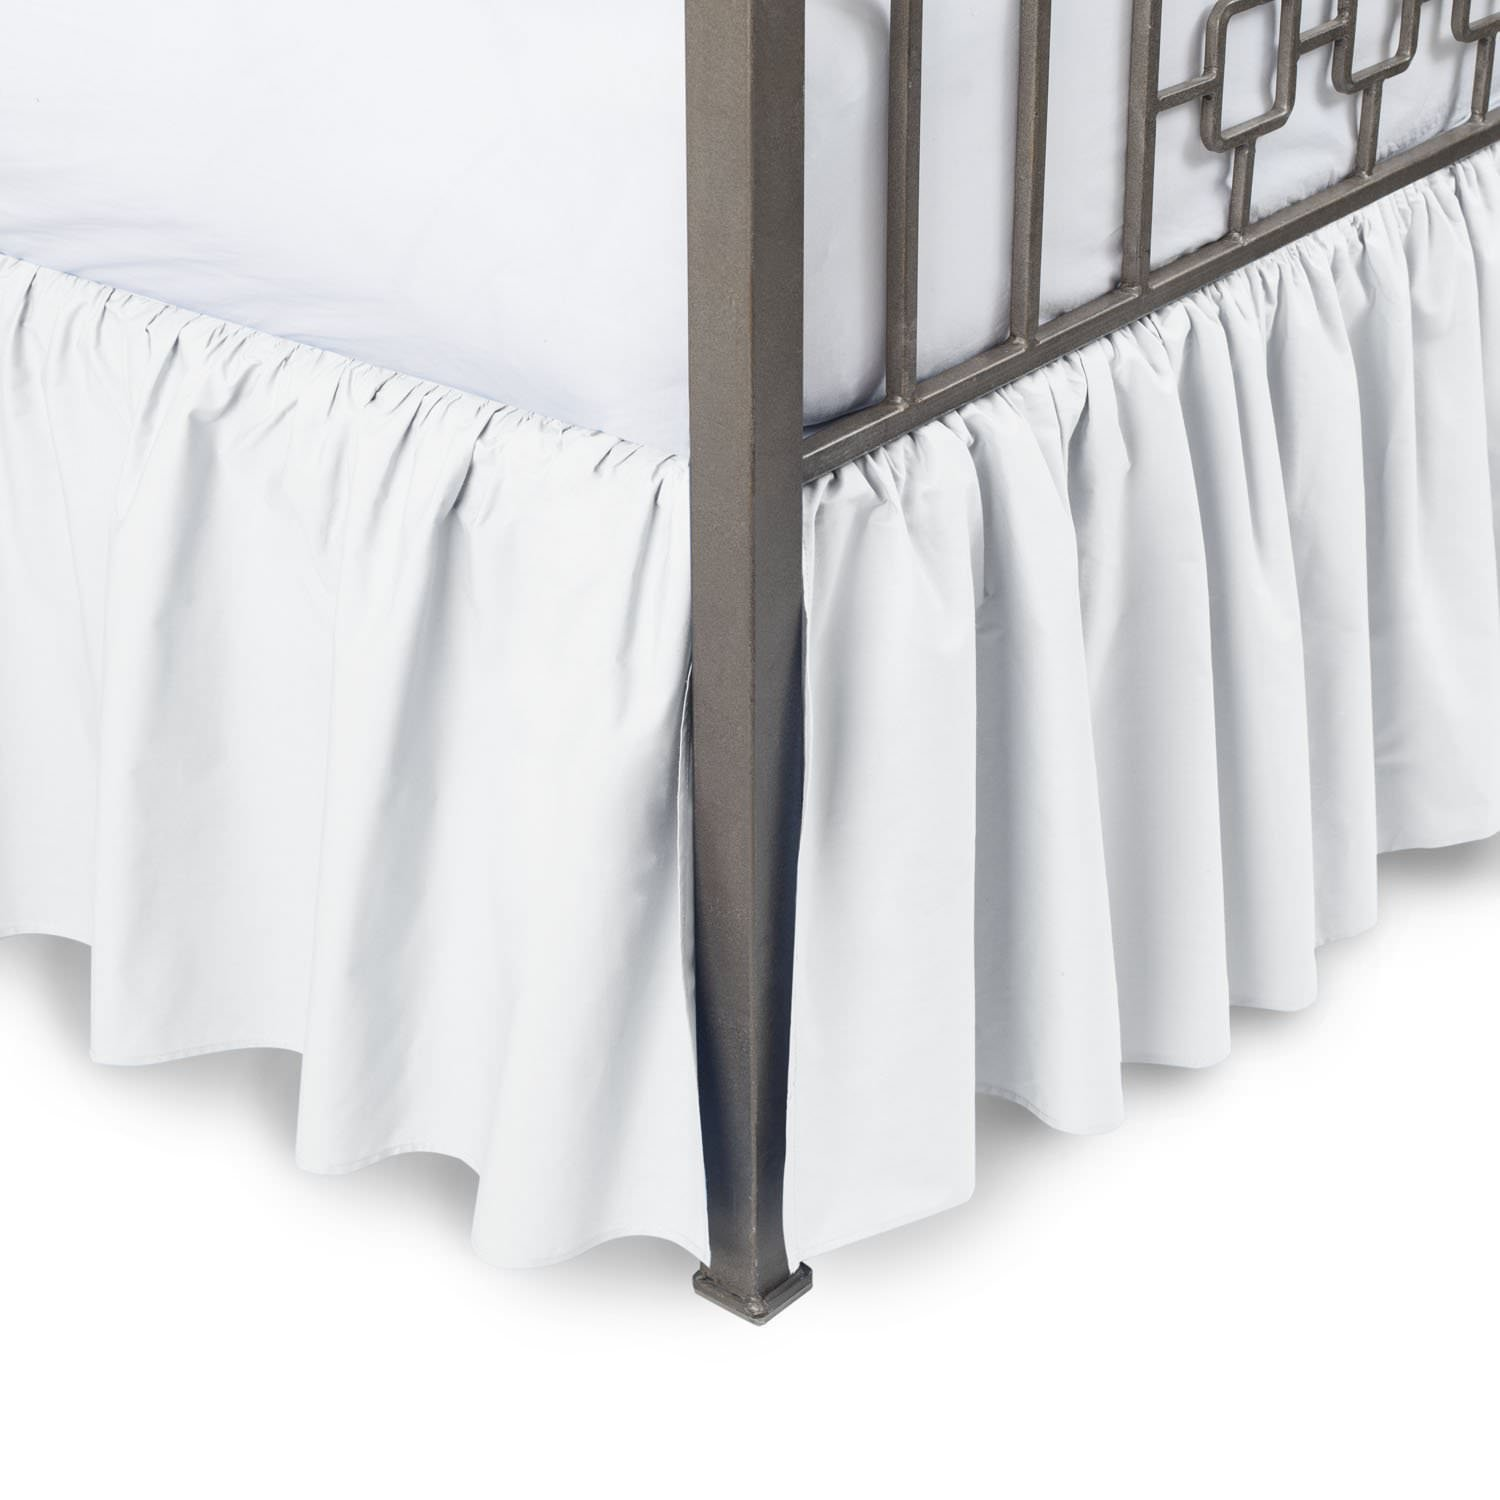 Sleepwell White Solid, Twin-XL Size Ruffled Bed Skirt 30 Inch Drop With Split Corner,100 Percent Pure Egyptian Cotton 400 Thread Count, Wrinkle & Fade Resistant, Top Quality